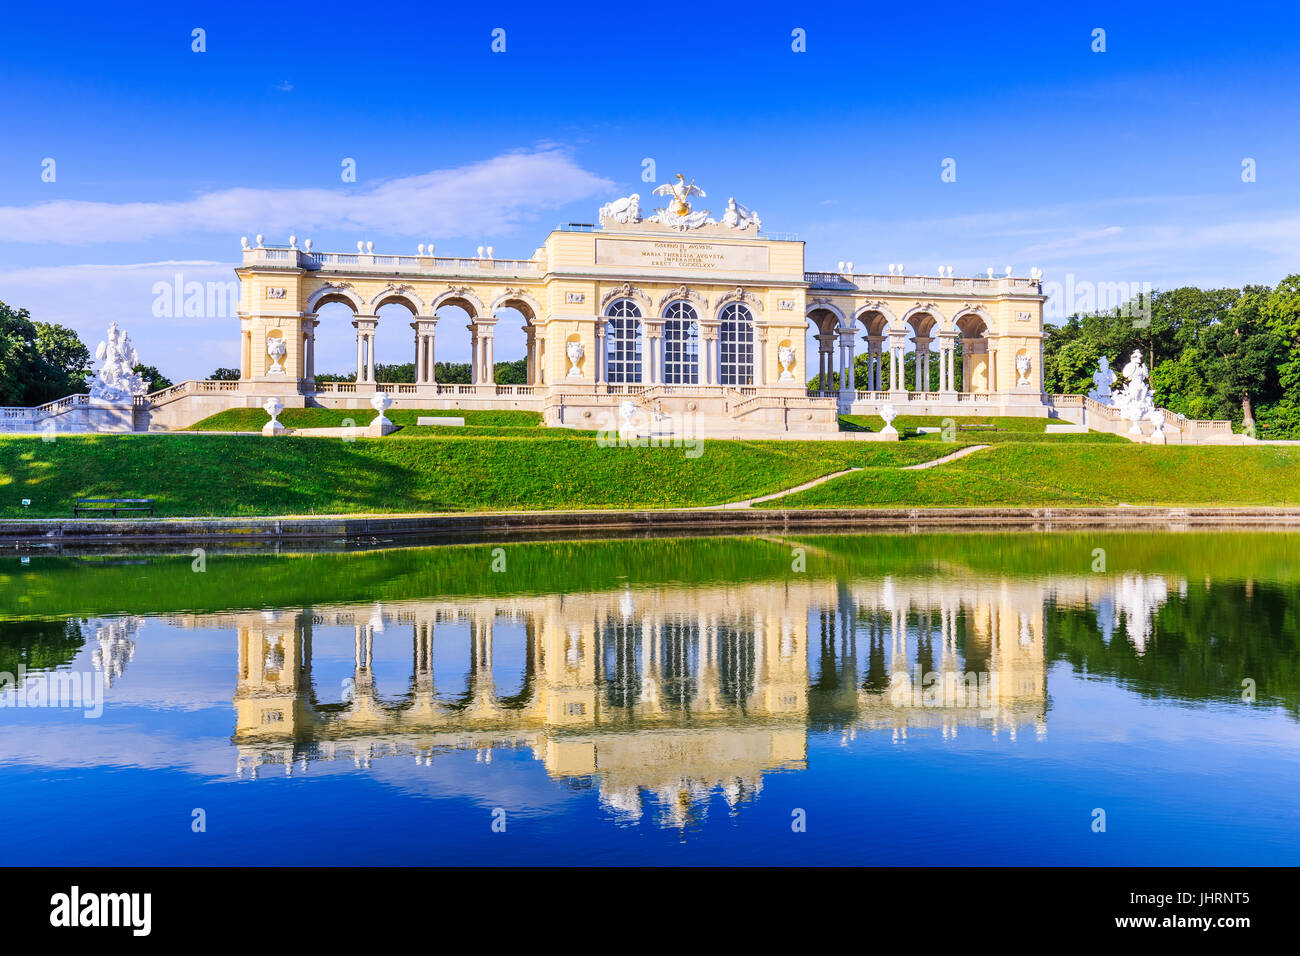 Vienna, Austria. The Gloriette pavilion in the Schonbrunn Palace Garden - Stock Image